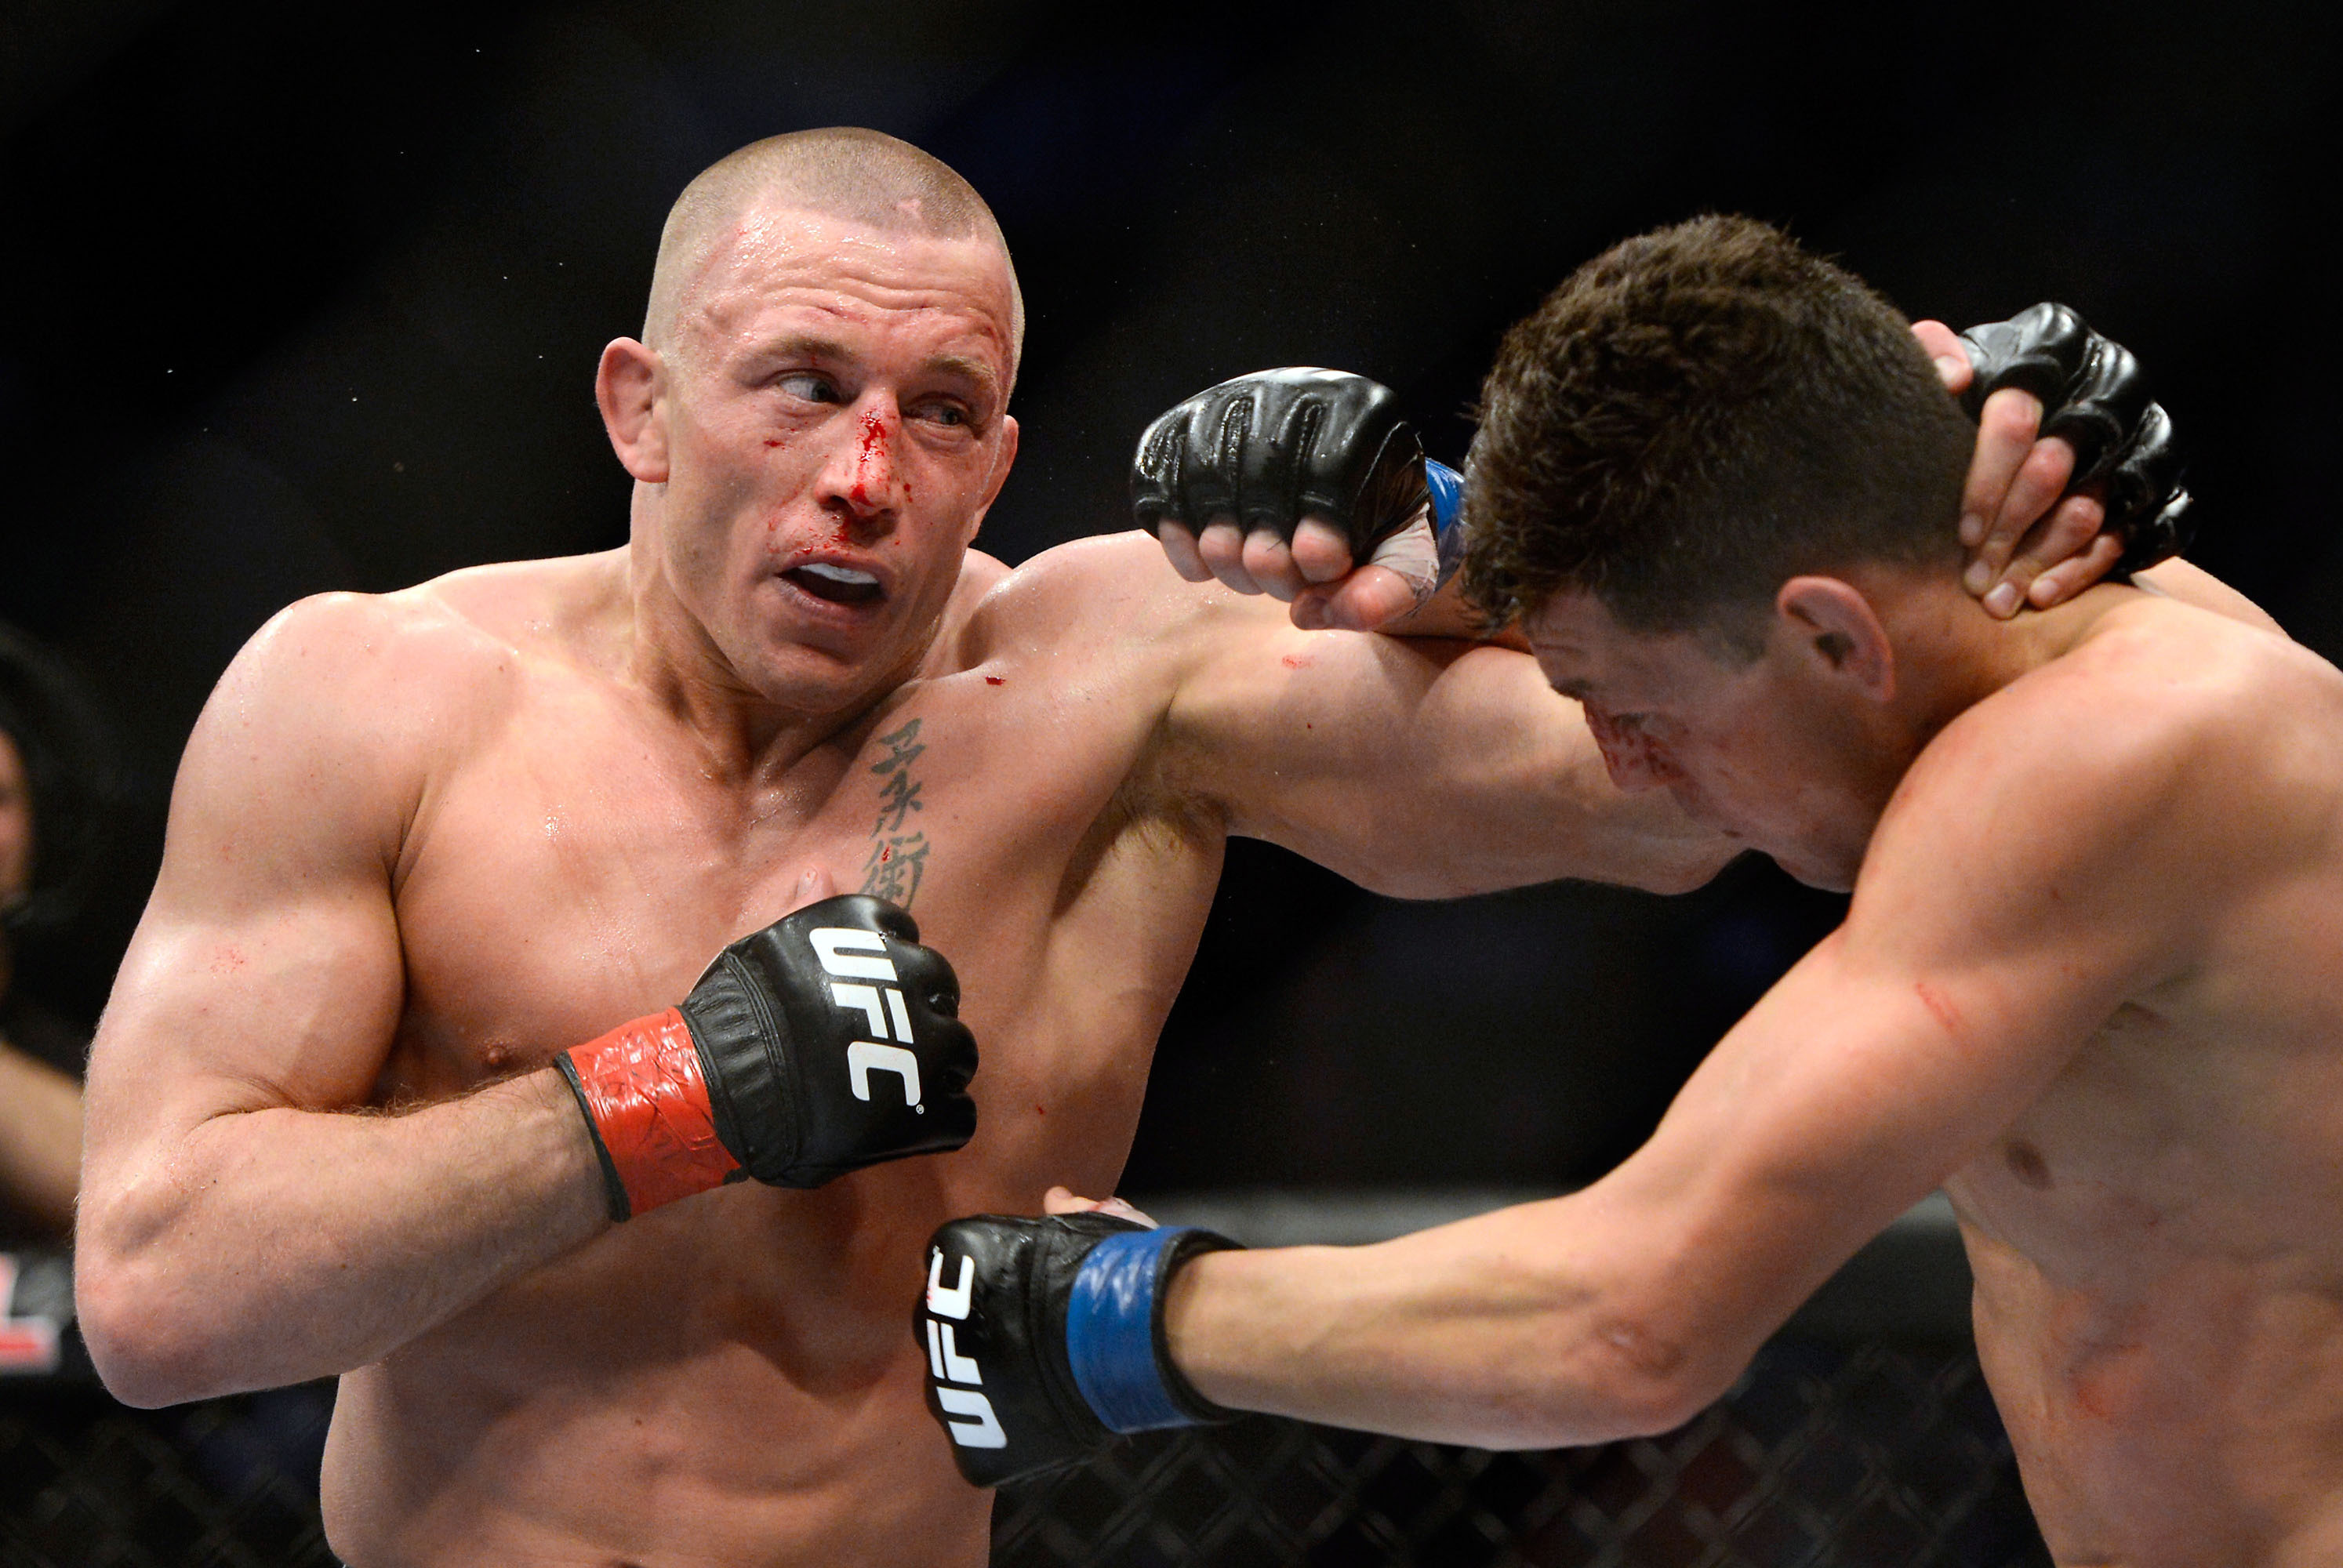 Gsp vs serra 1 betting odds can i bet on kentucky derby online illinois